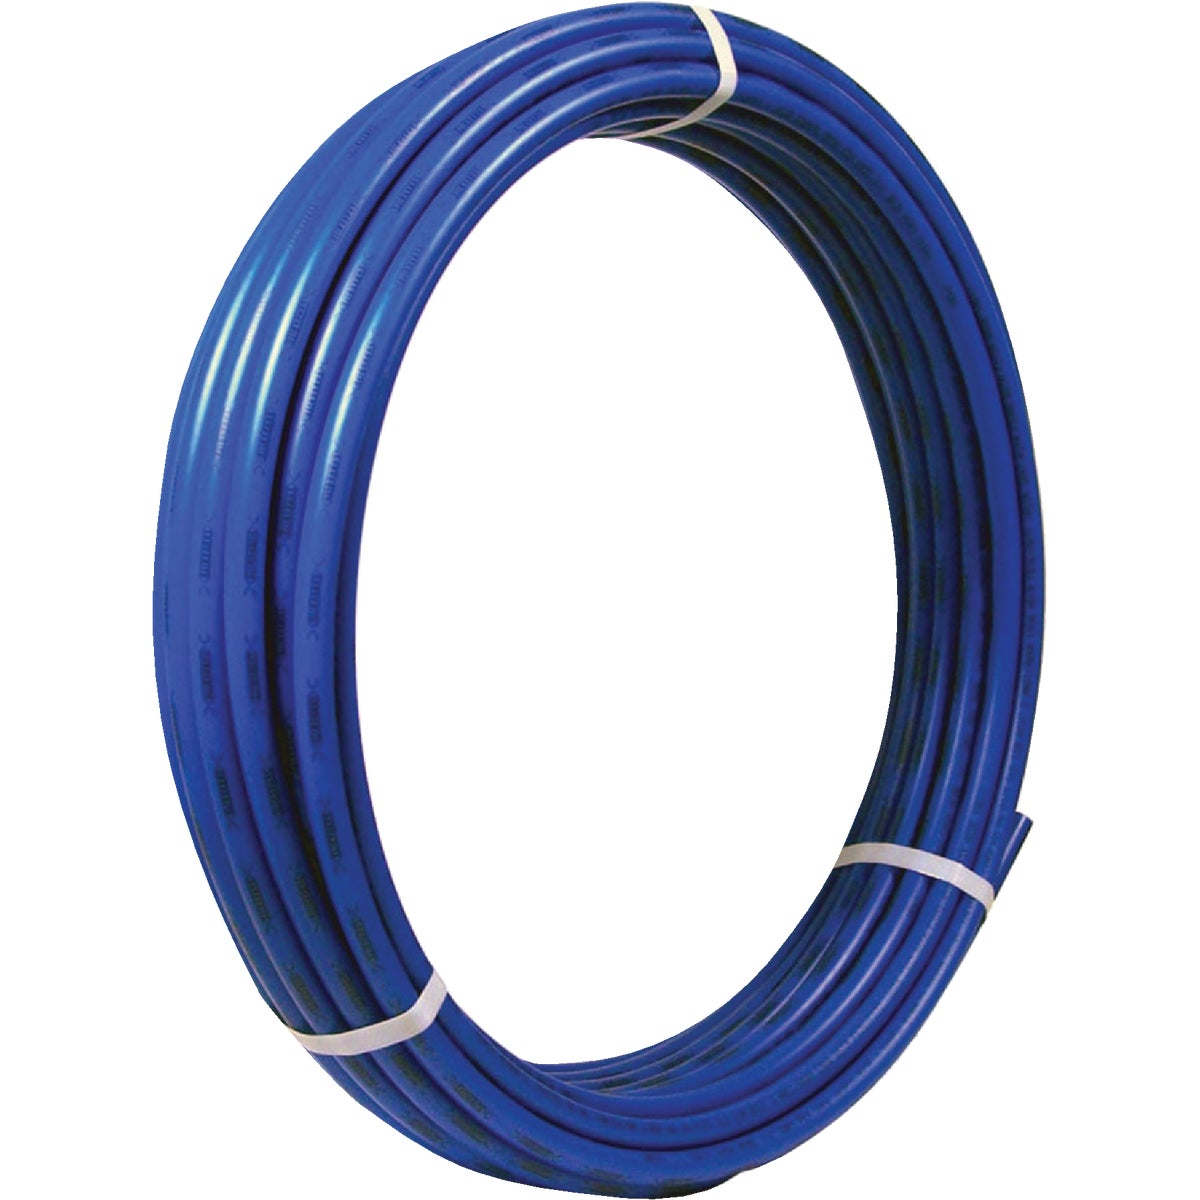 "3/4""X300 BLUE PEX TUBING - WPTC12-300B by Watts Regulator Co"